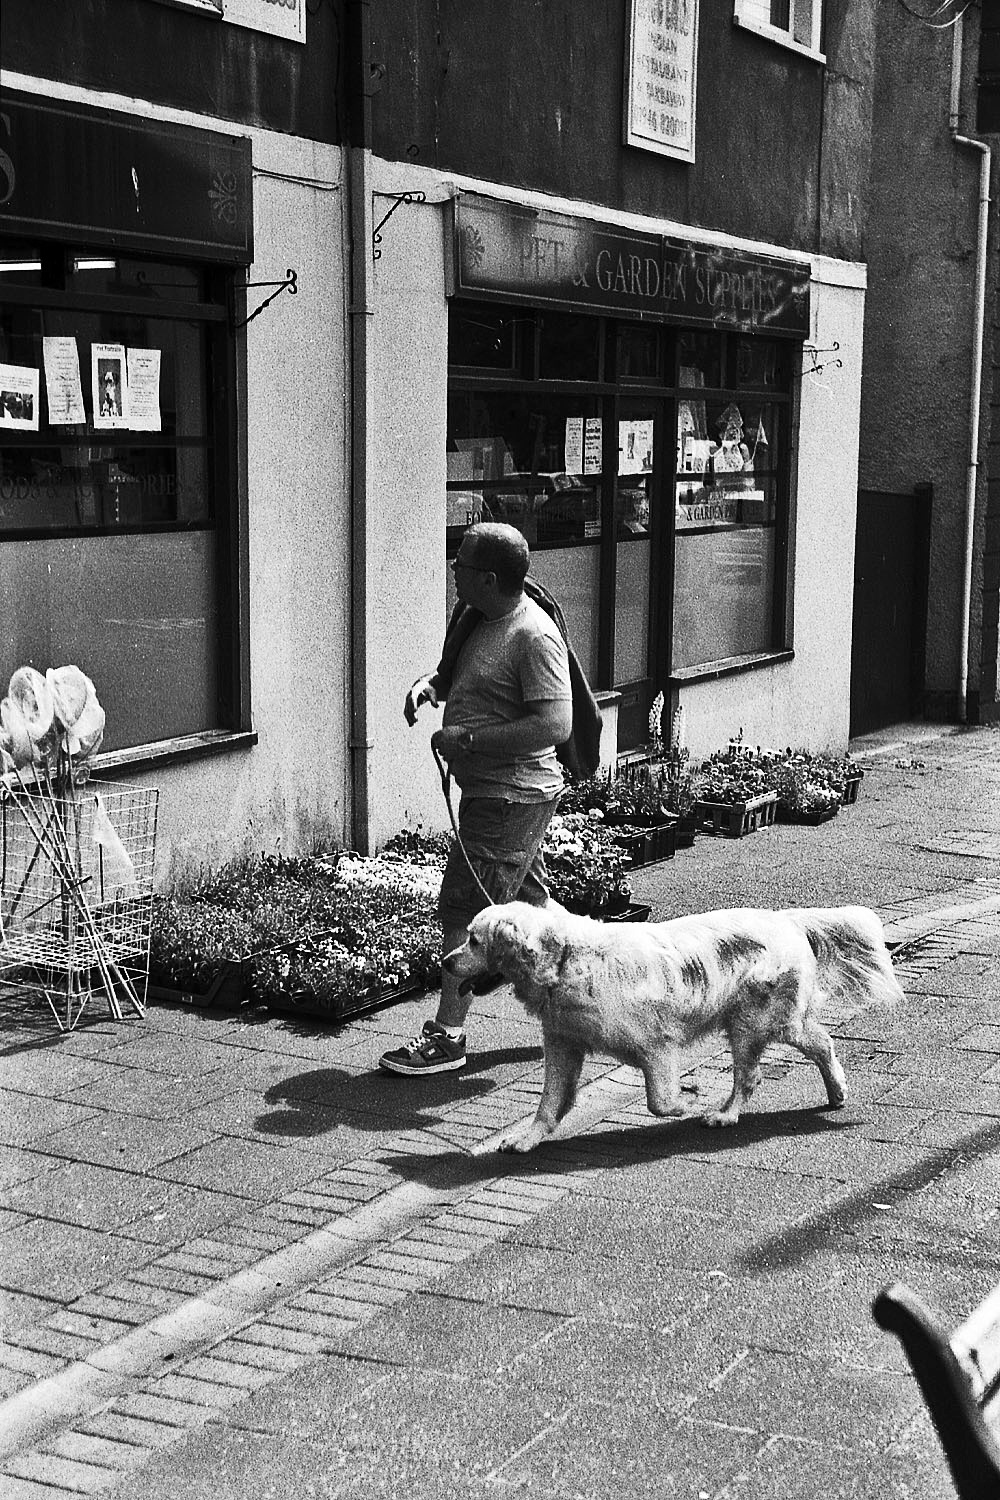 man walks labrador egremont street photography uk photographer kevin shelley prints for sale leica m2 jupiter 8 50 f2